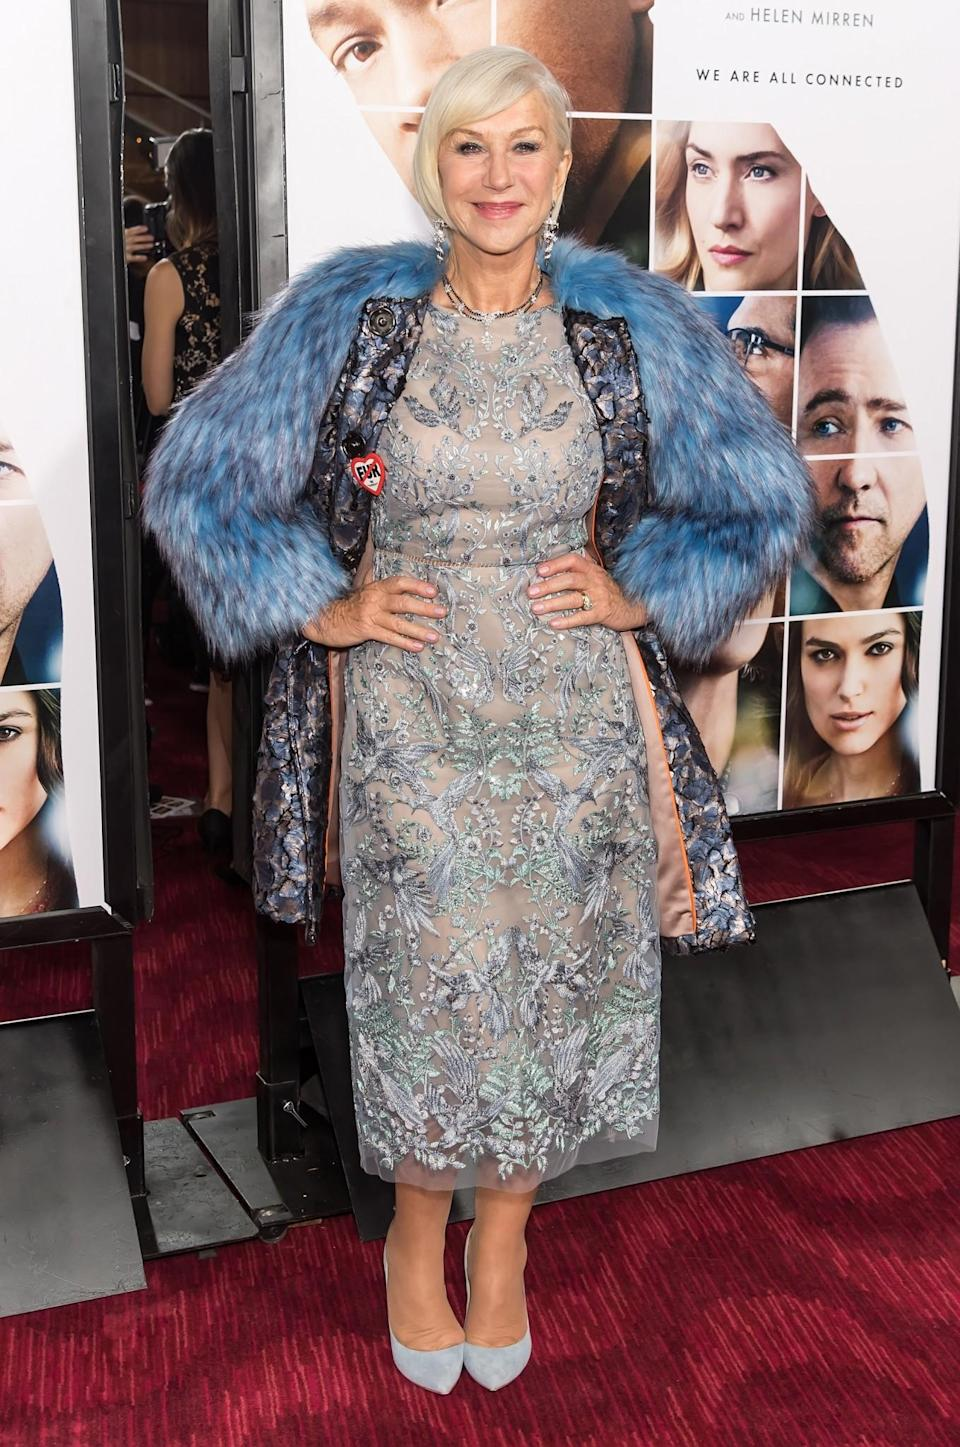 <p>Yet another excellent look from the Dame herself. A lace dress, paired with a faux fur coat and a big smile – what more could you want from a party look? [Photo: Getty] </p>